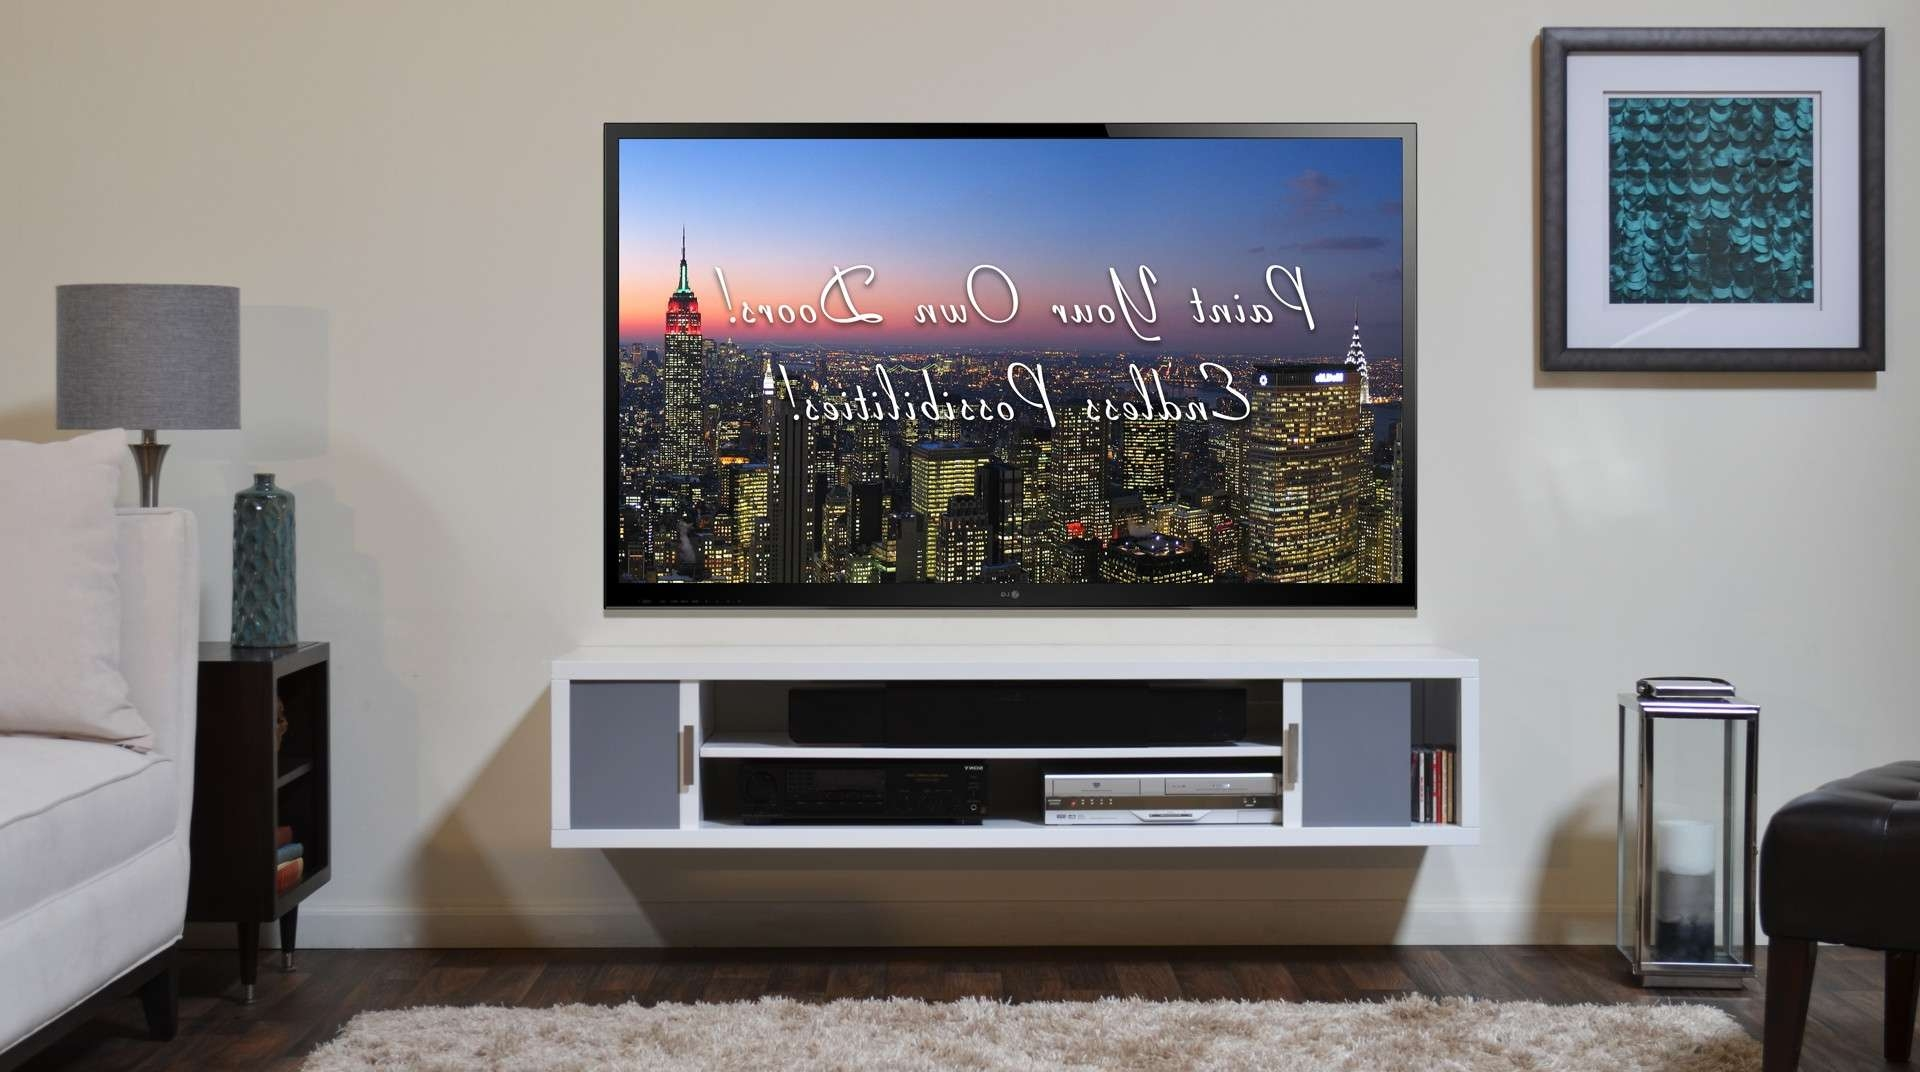 Tv Wall Cabinets For Flat Screens 20 Photos Wall Mounted Tv Cabinets For Flat Screens